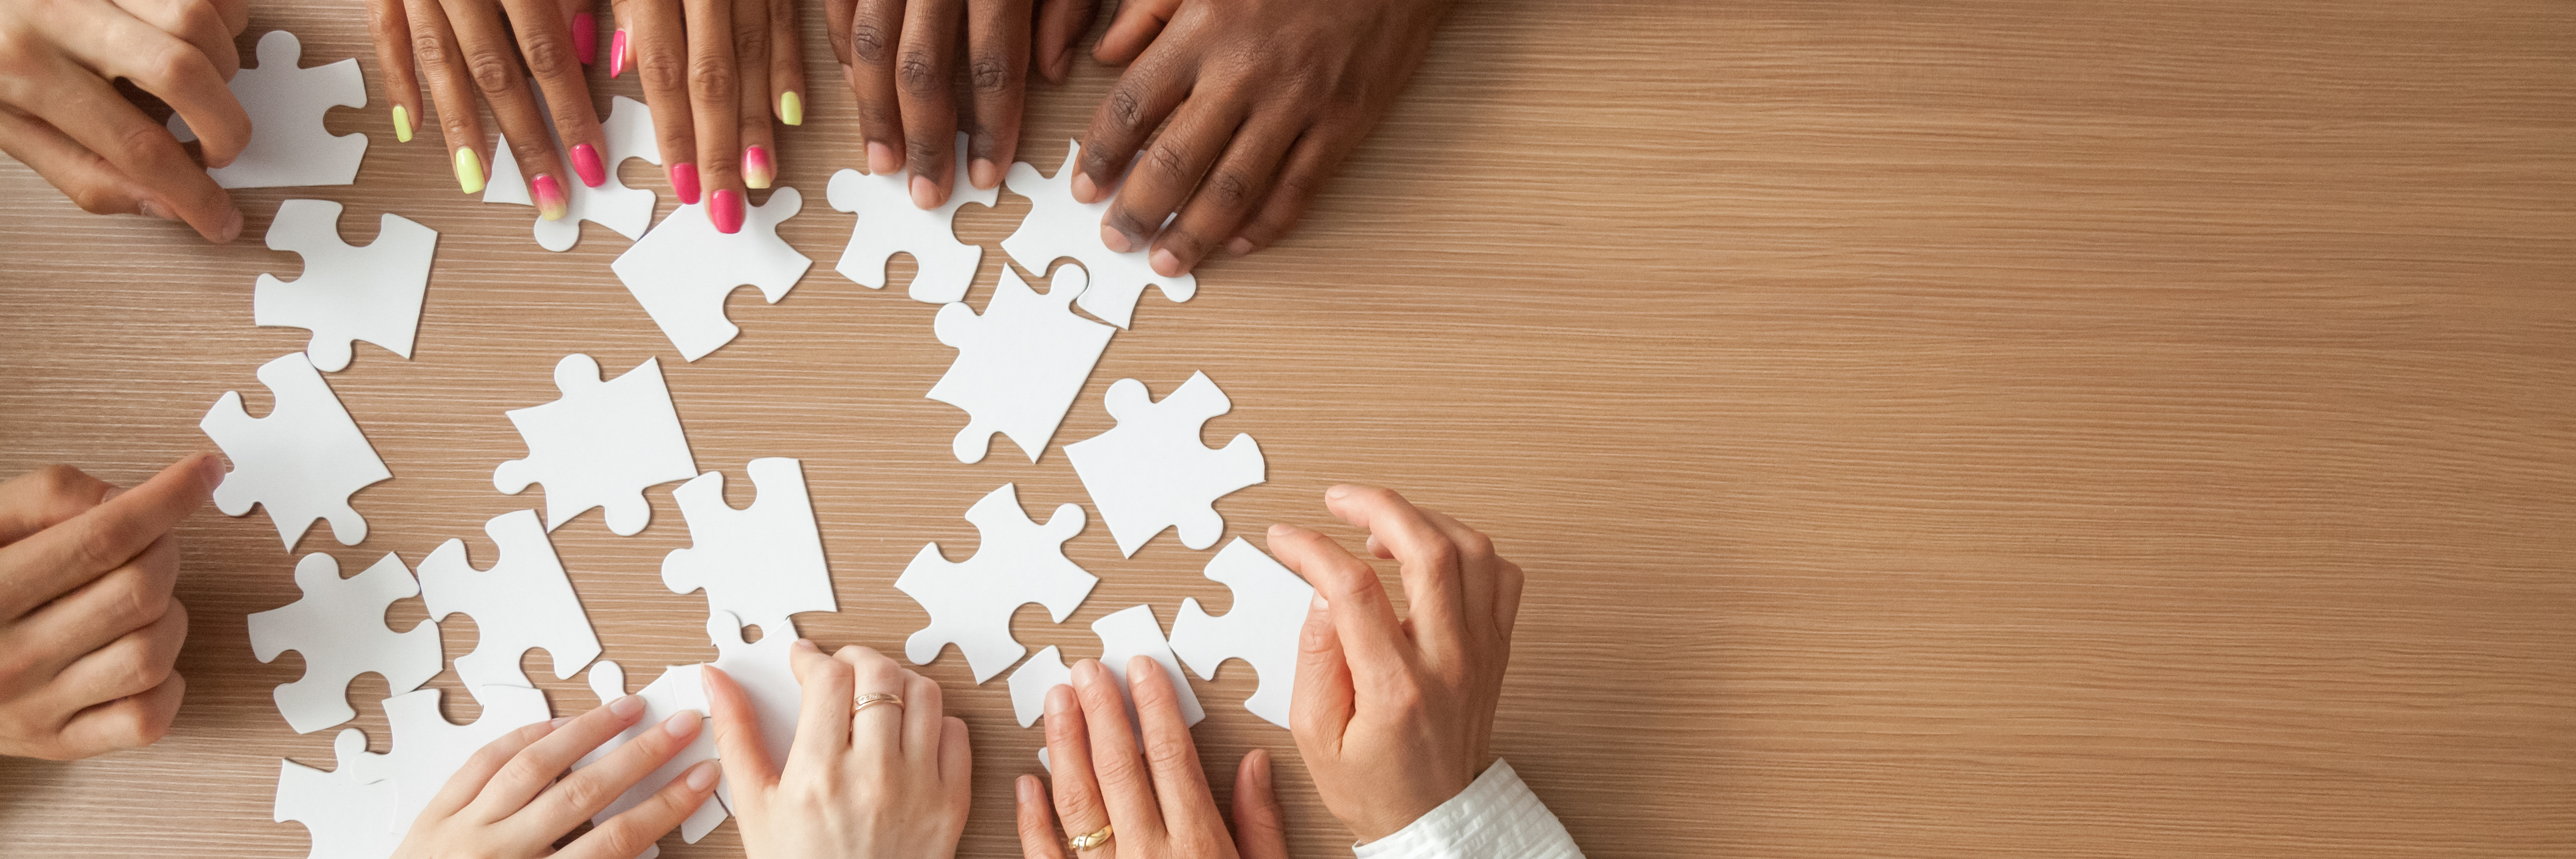 people's hands assembling a puzzle together on a wooden table